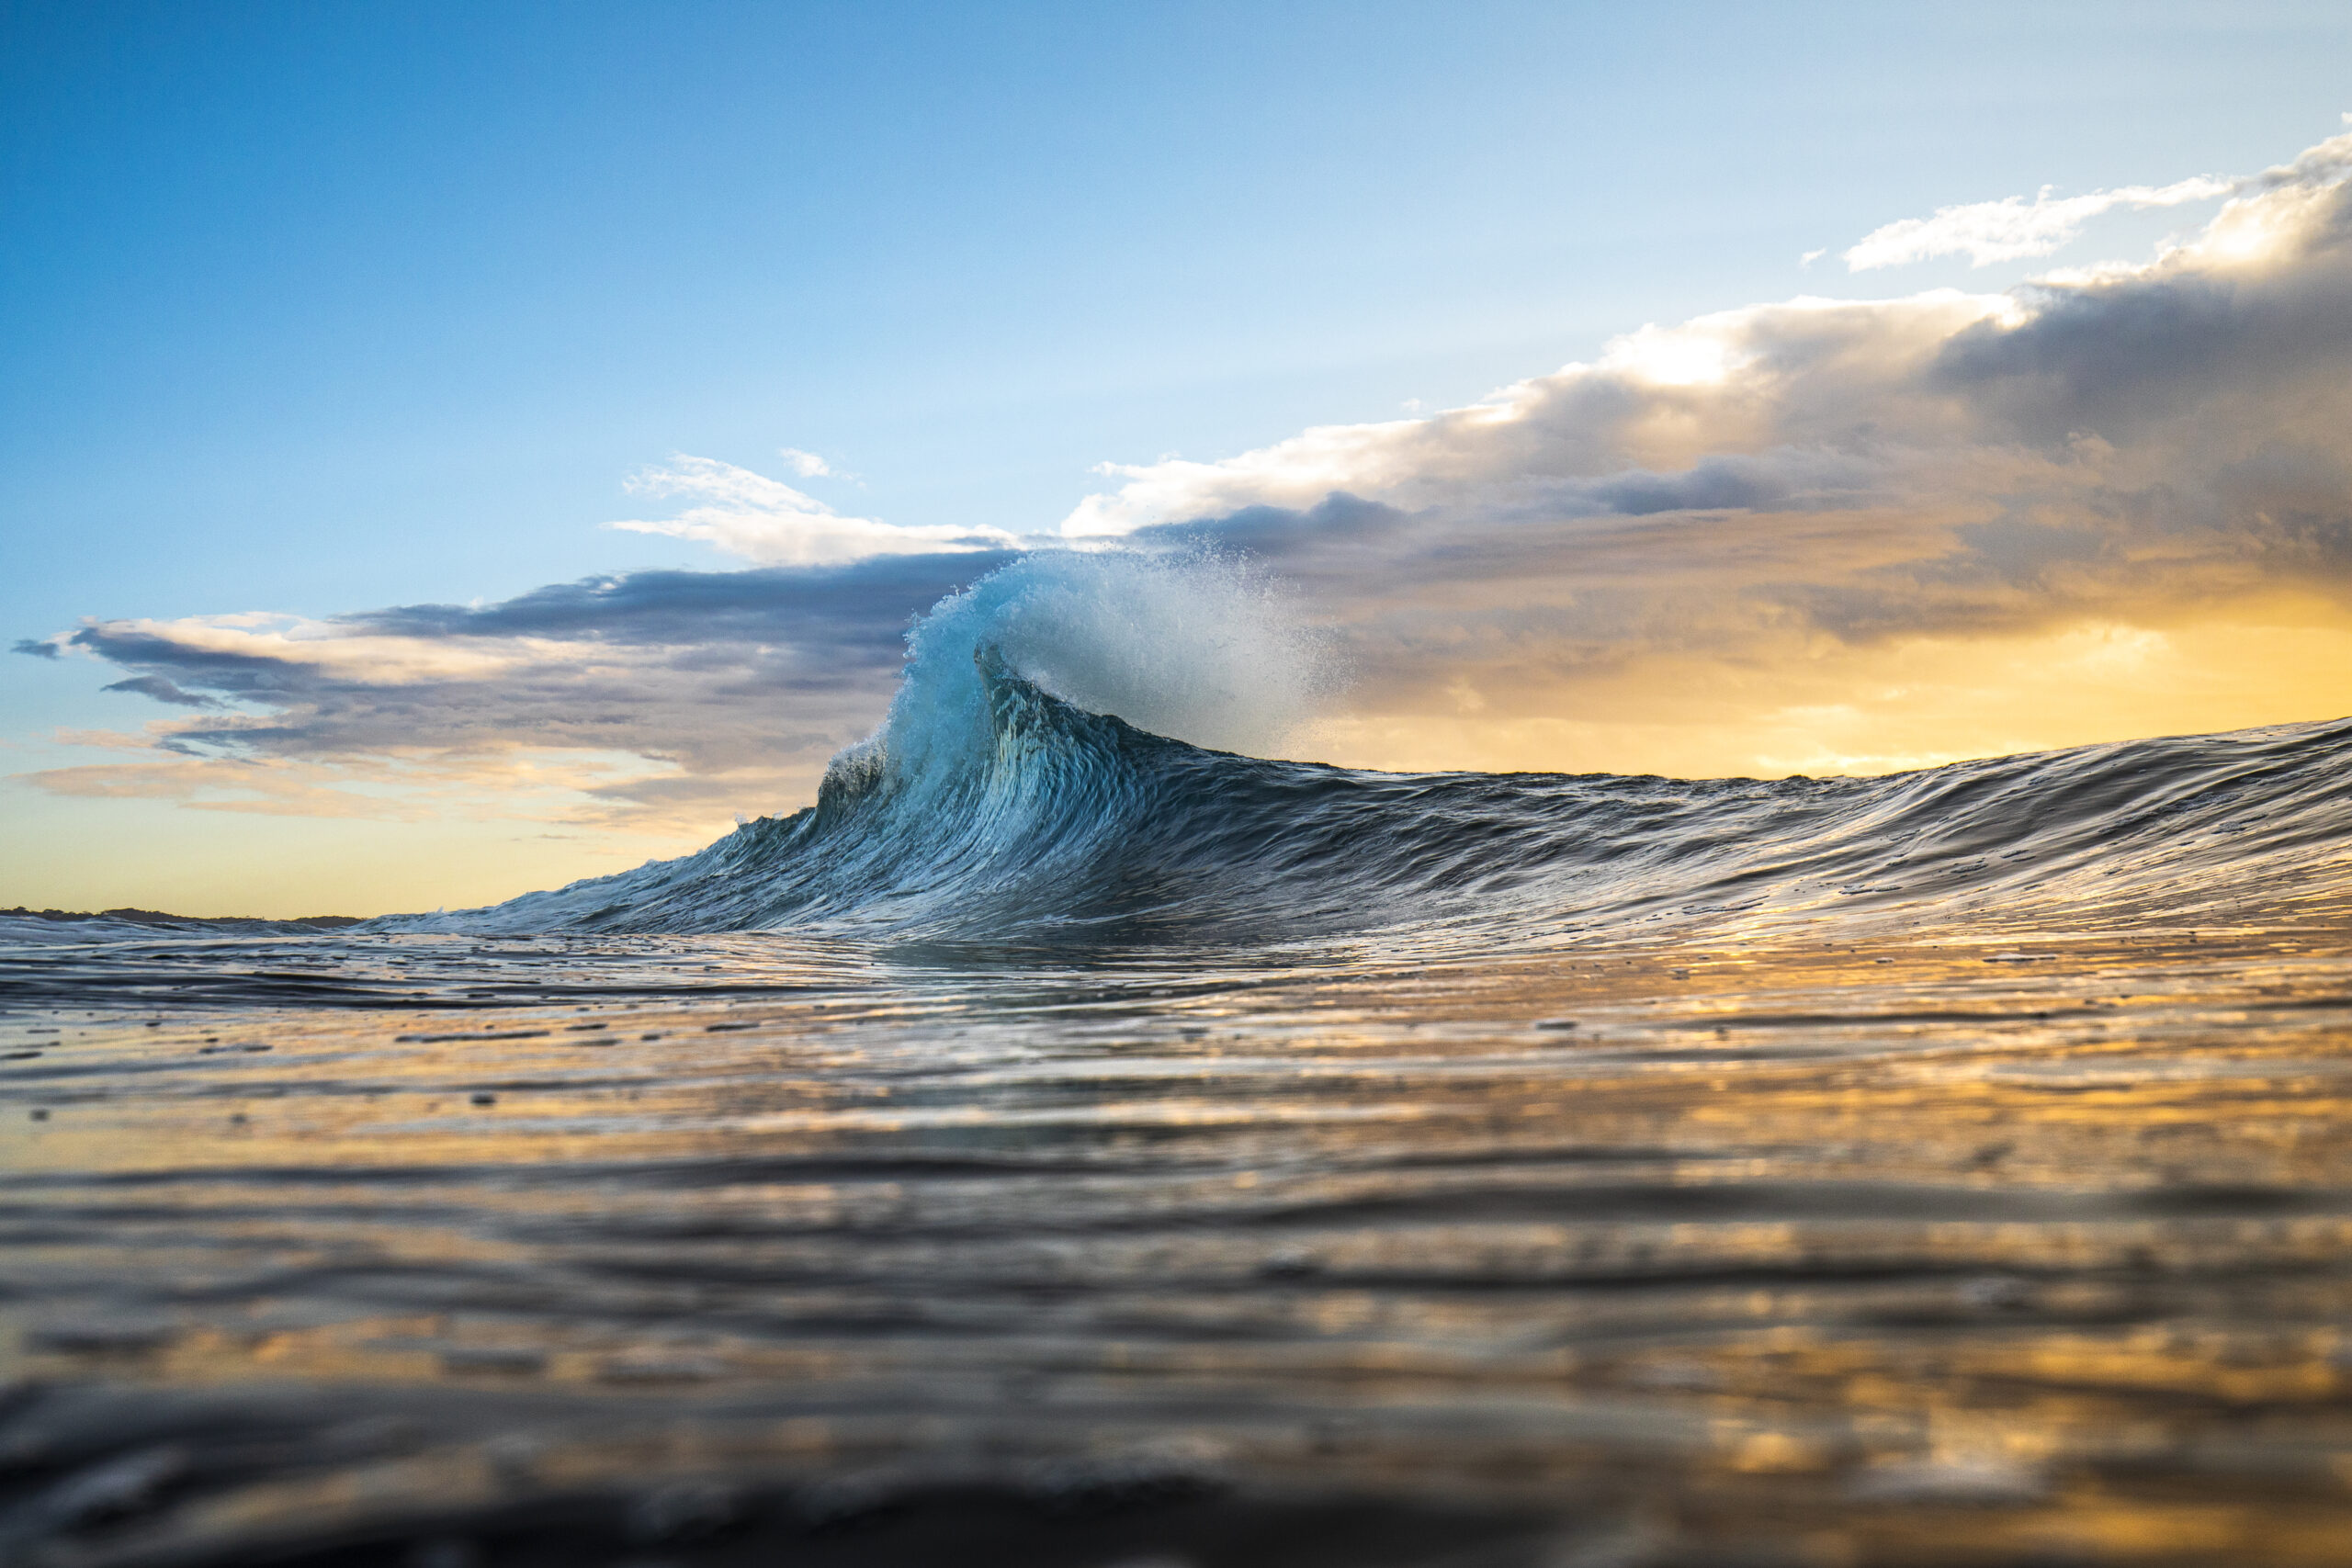 Back blue: Ocean needs $500m investment by 2030 to mitigate climate risk